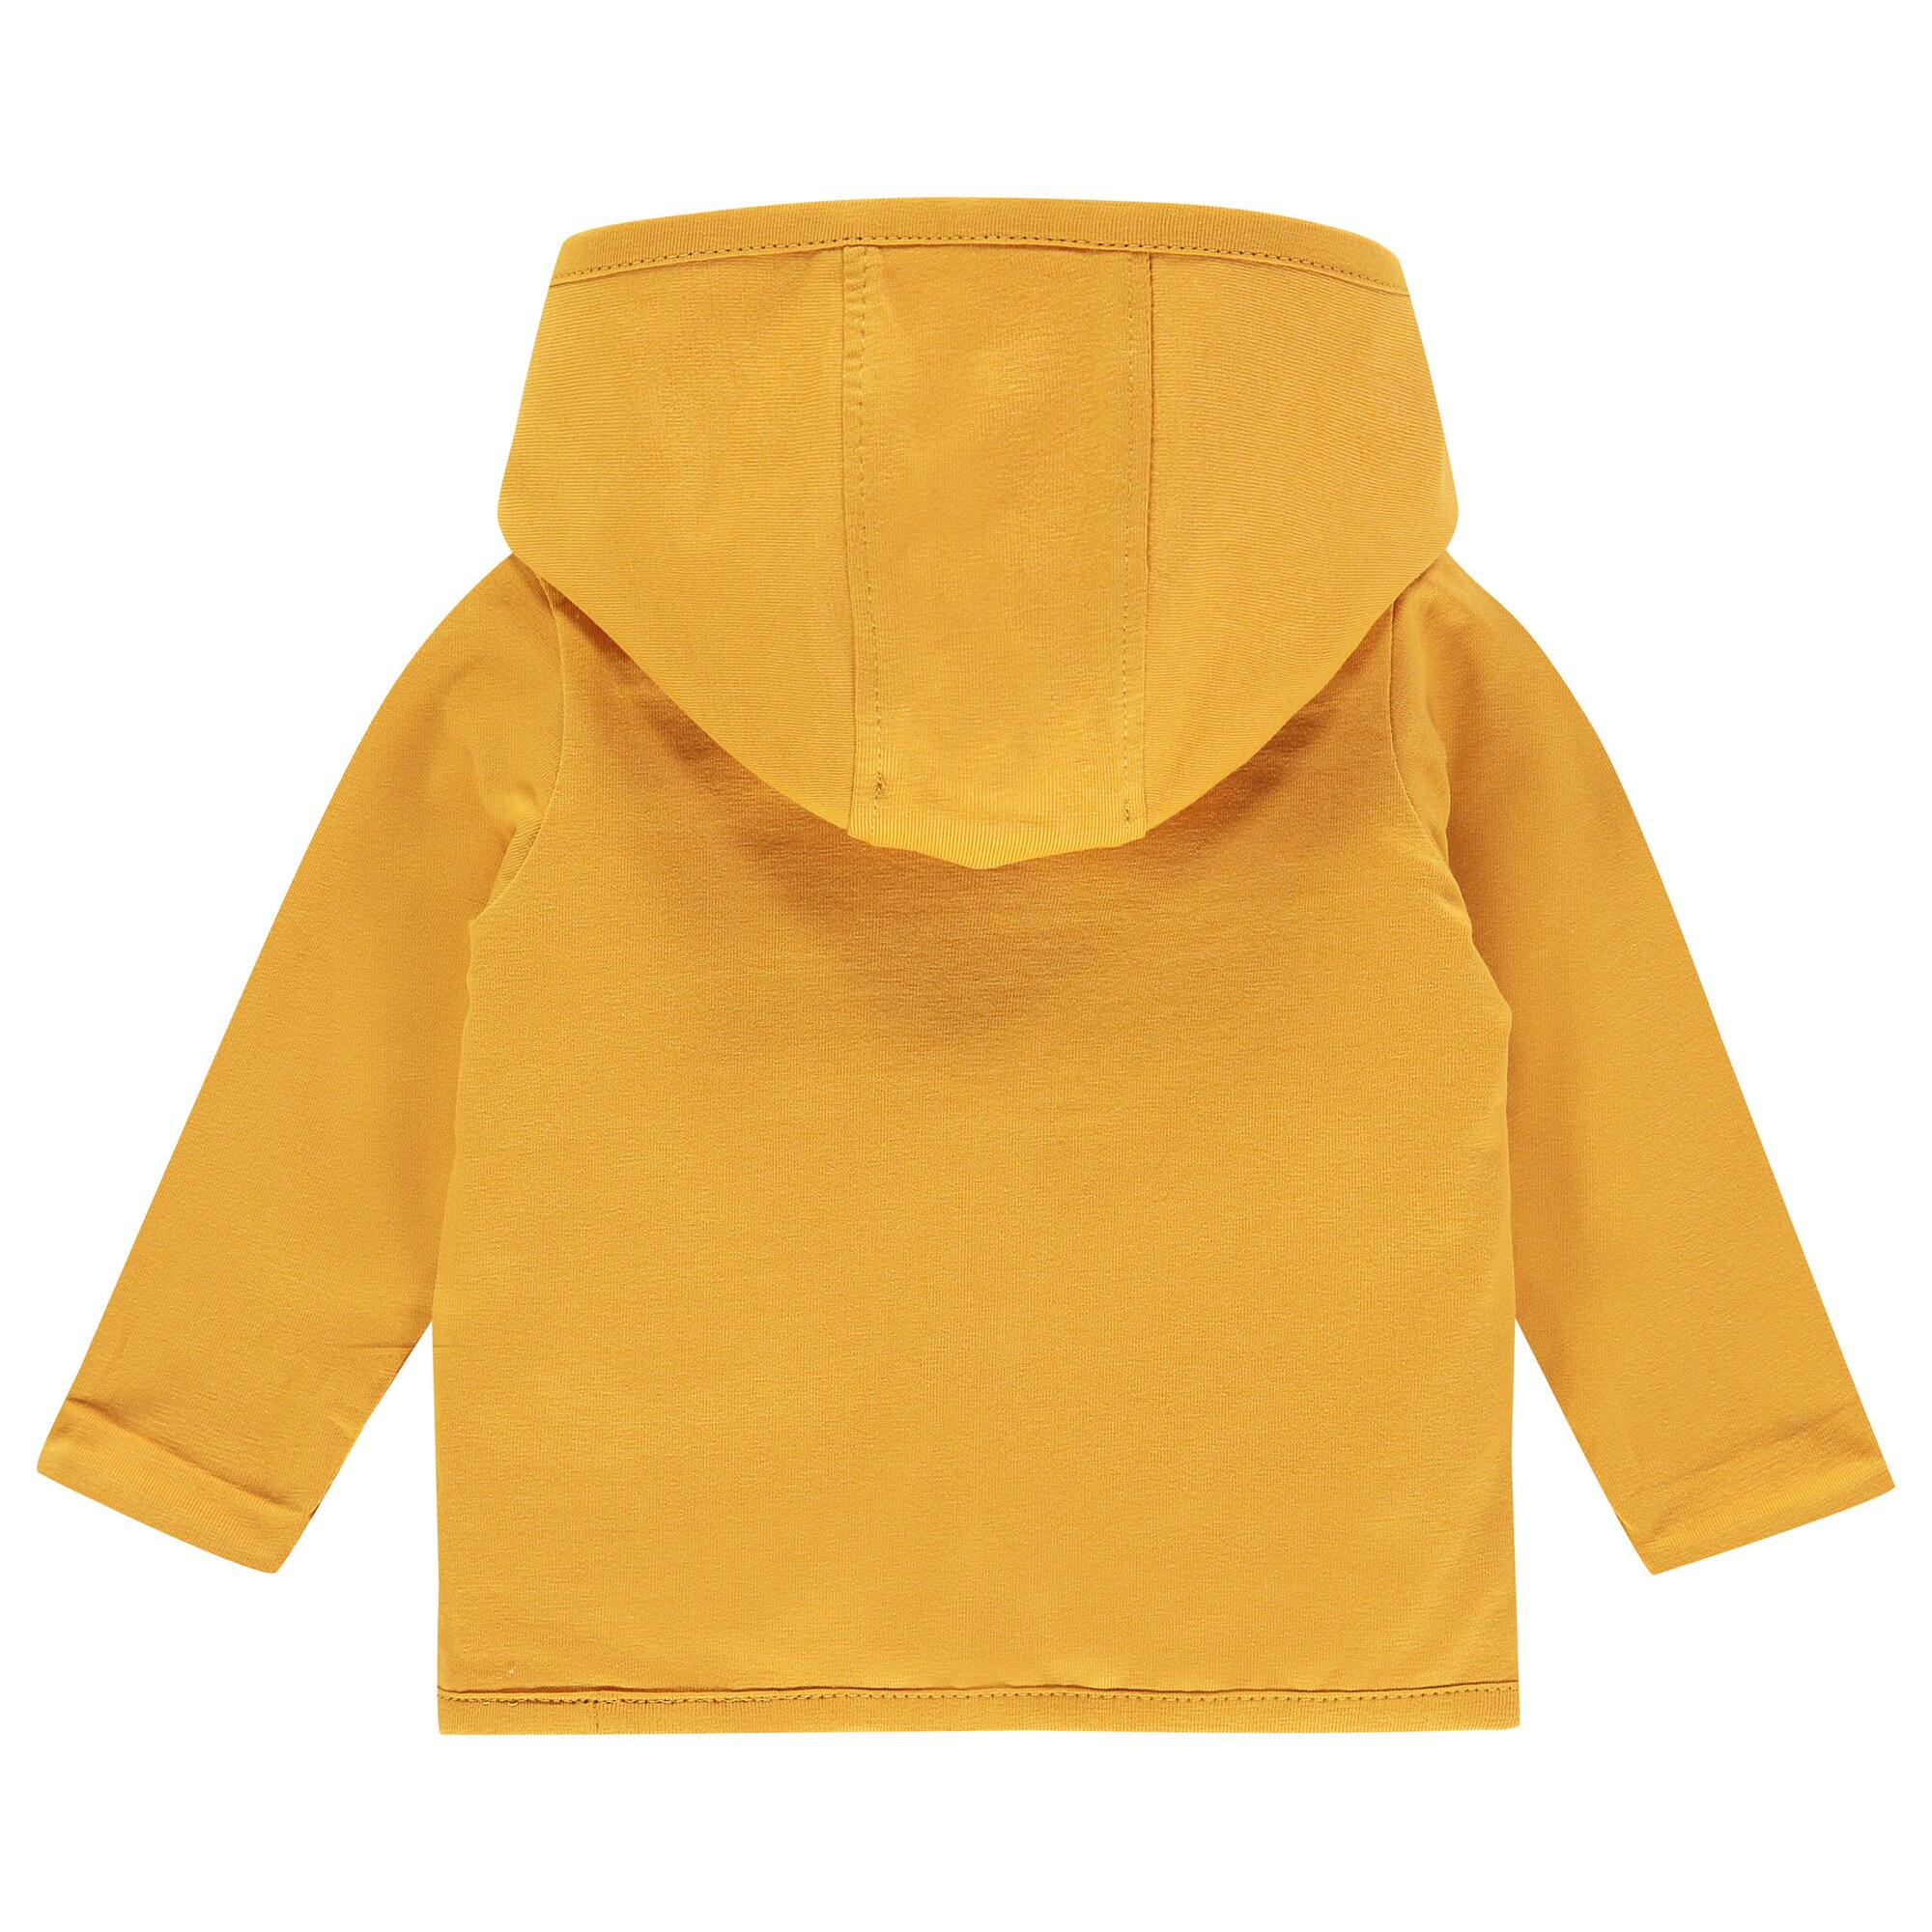 noppies-strickjacke-haye, 19.99 EUR @ babywalz-de